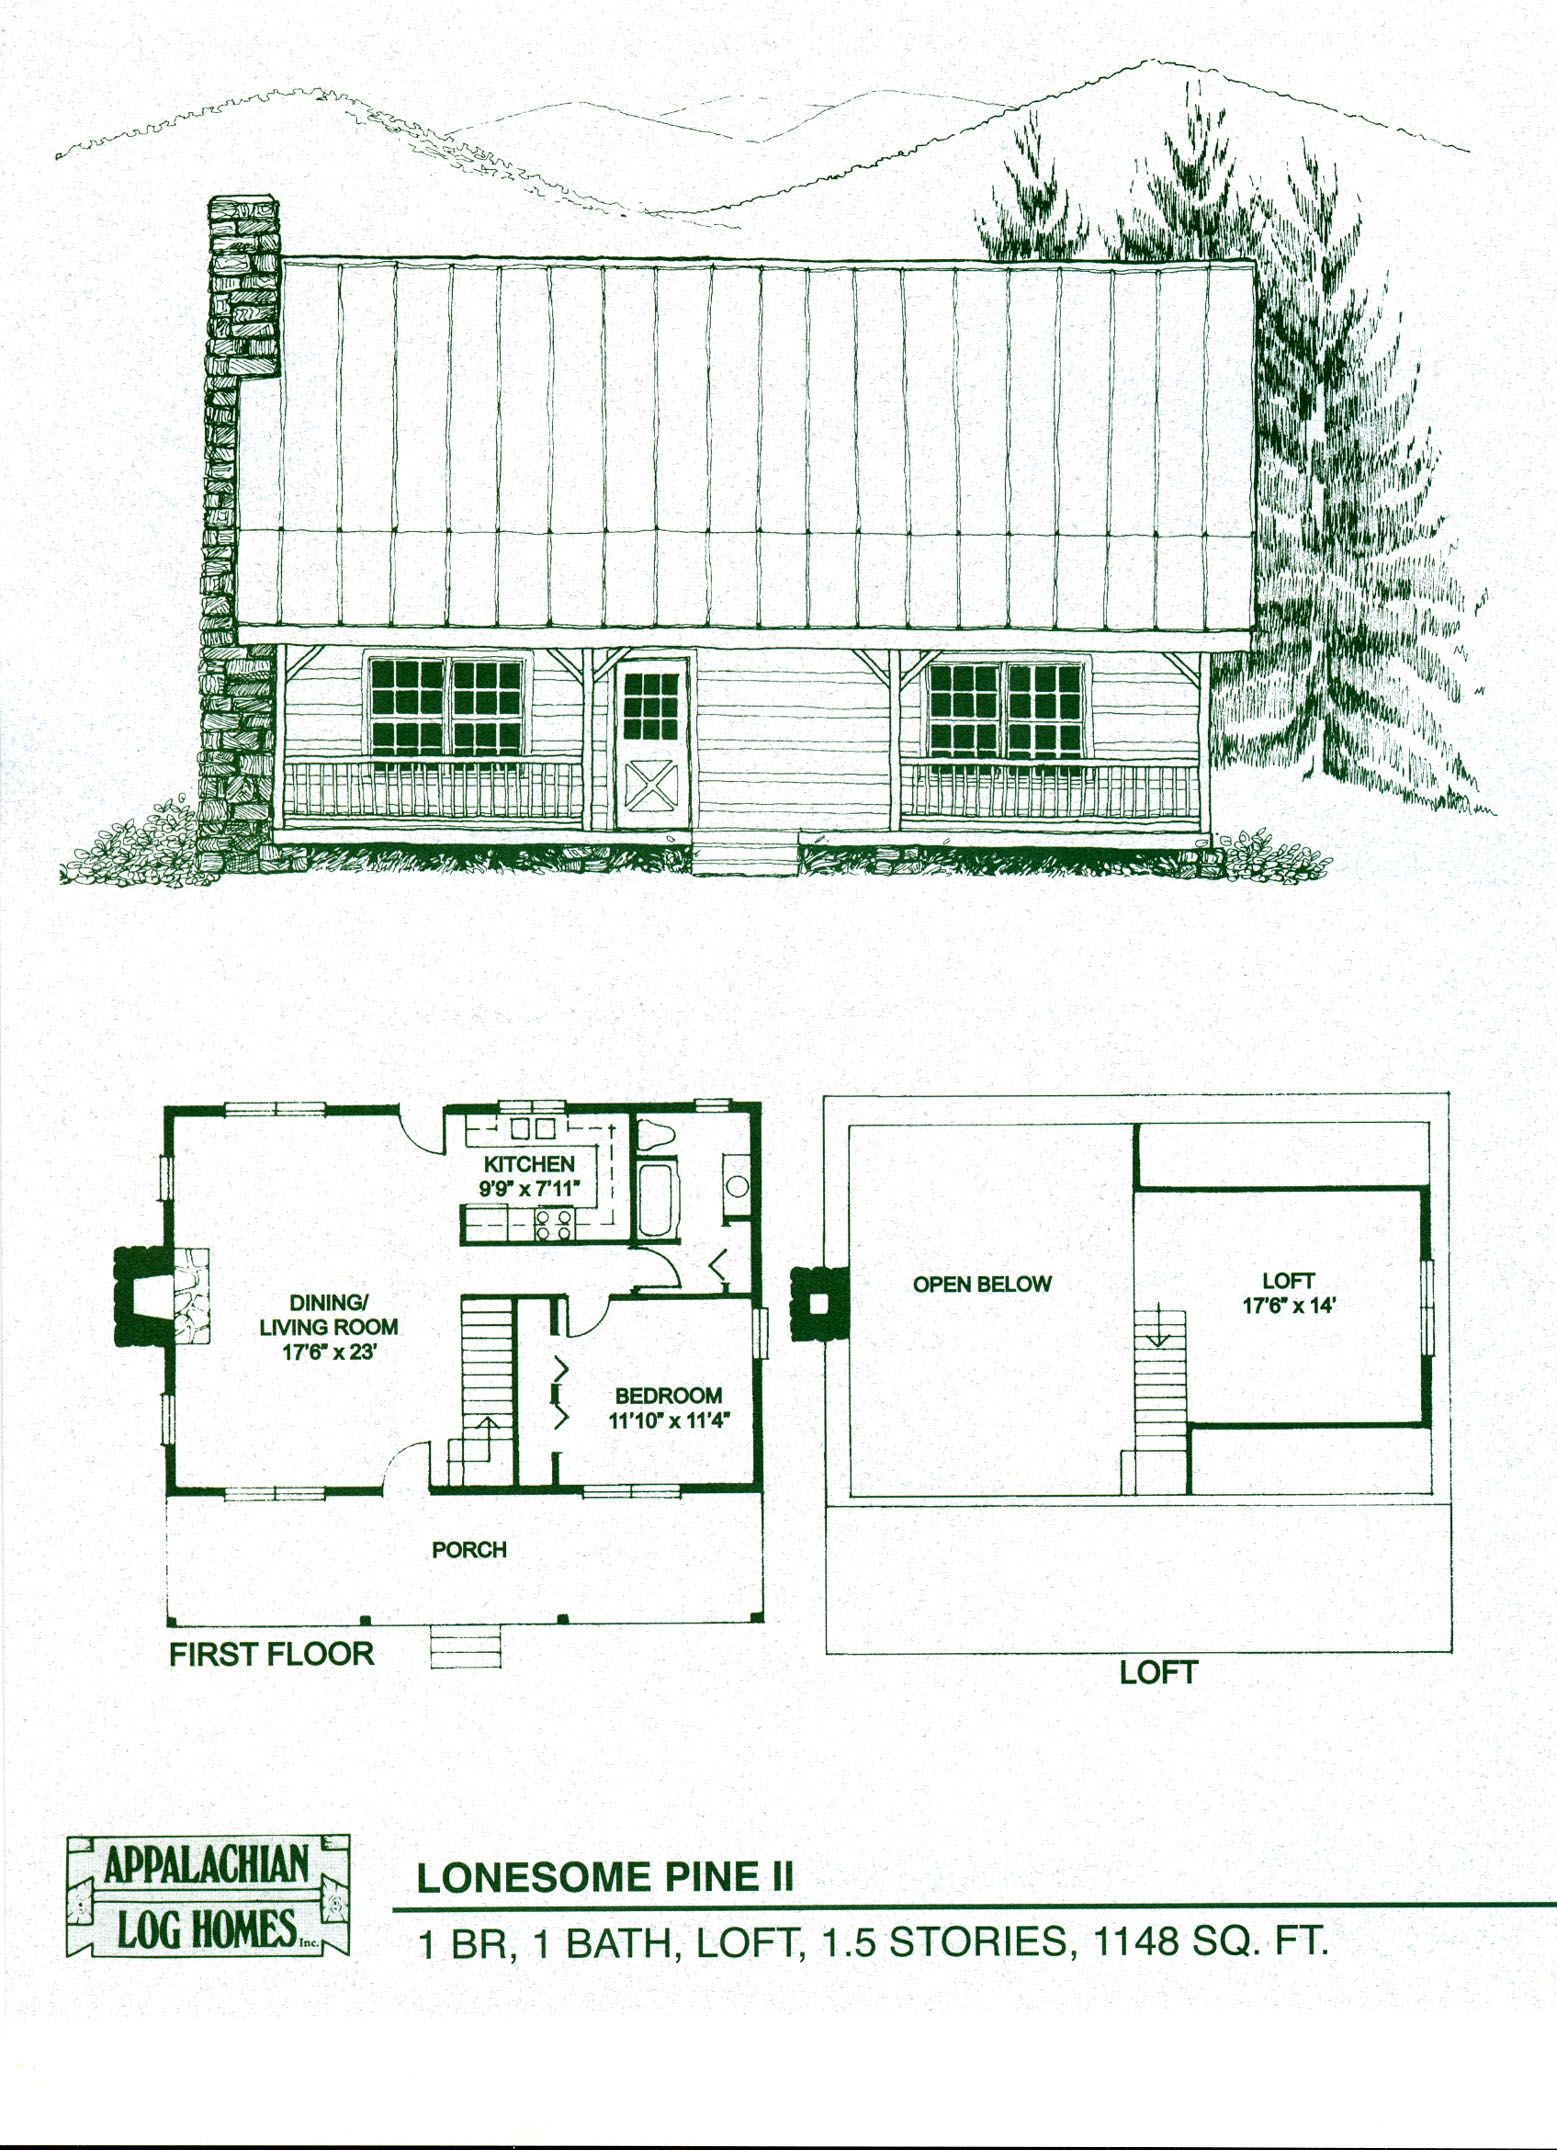 ... Cabin Design Log Home Floor Plans Log Cabin Kits Appalachian Log Homes  ... Part 96